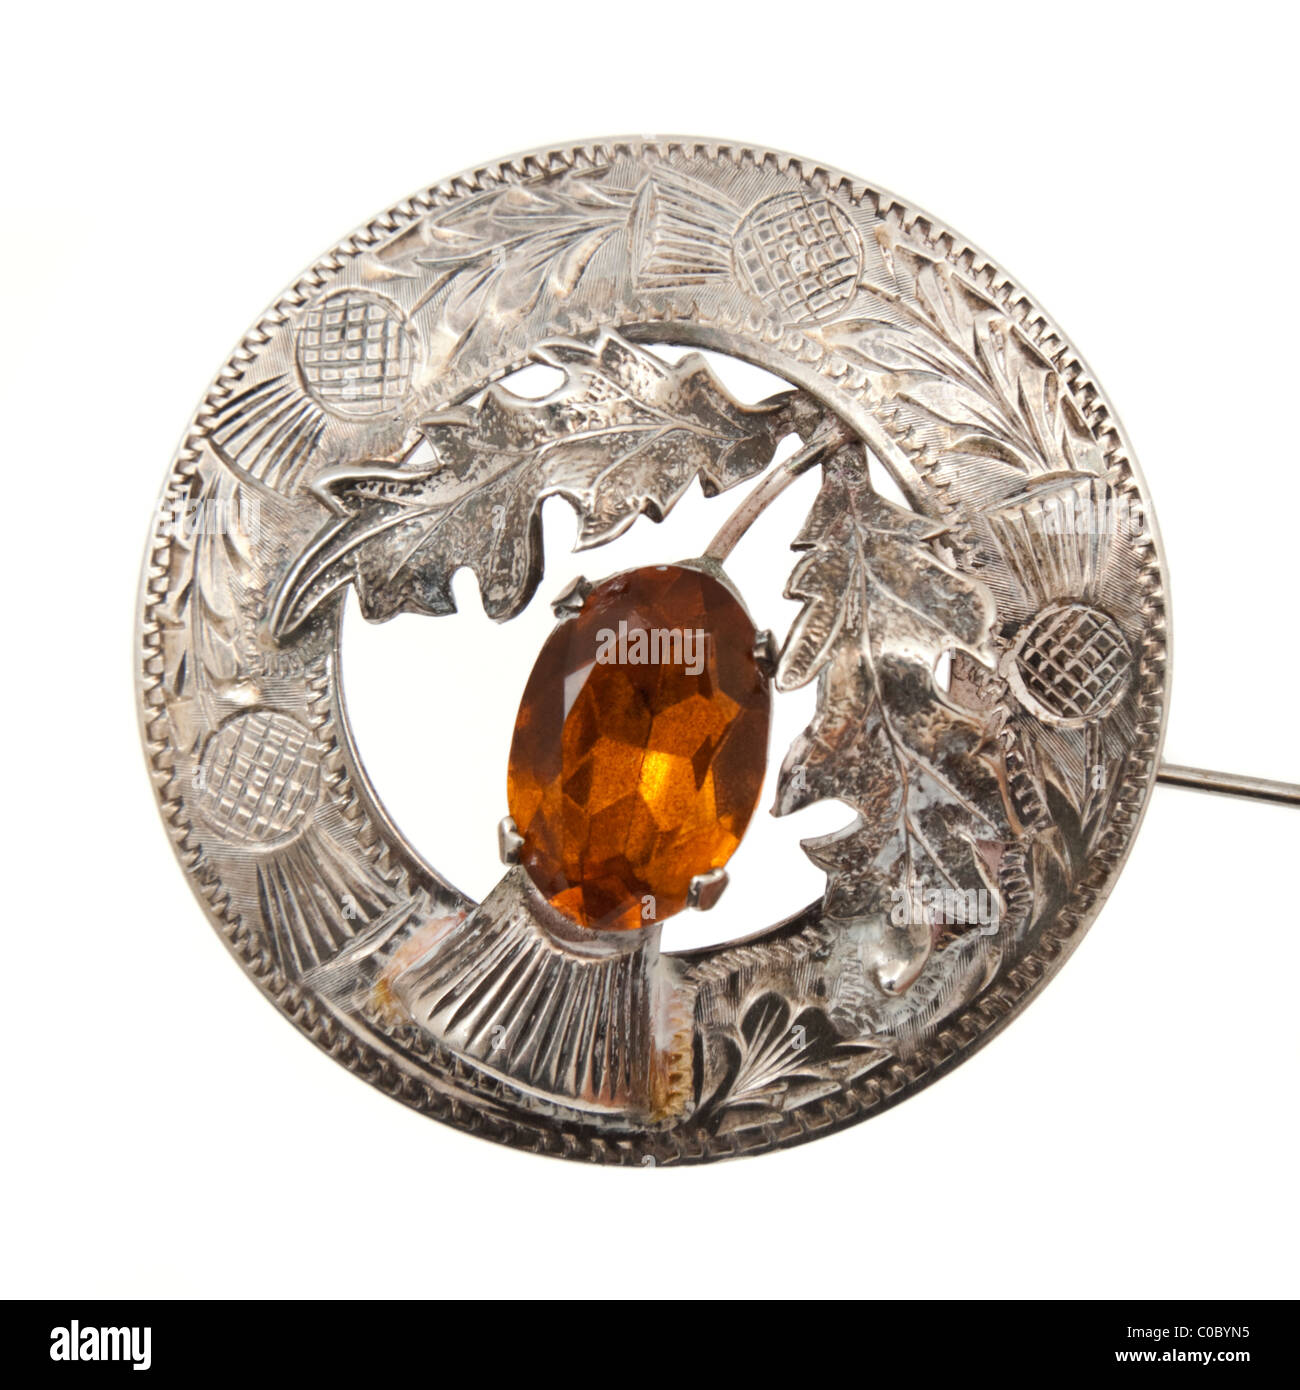 Ward Brothers 1953 Scottish Sterling Silver (Glasgow) thistle brooch / kilt pin with Citrine centre stone - Stock Image